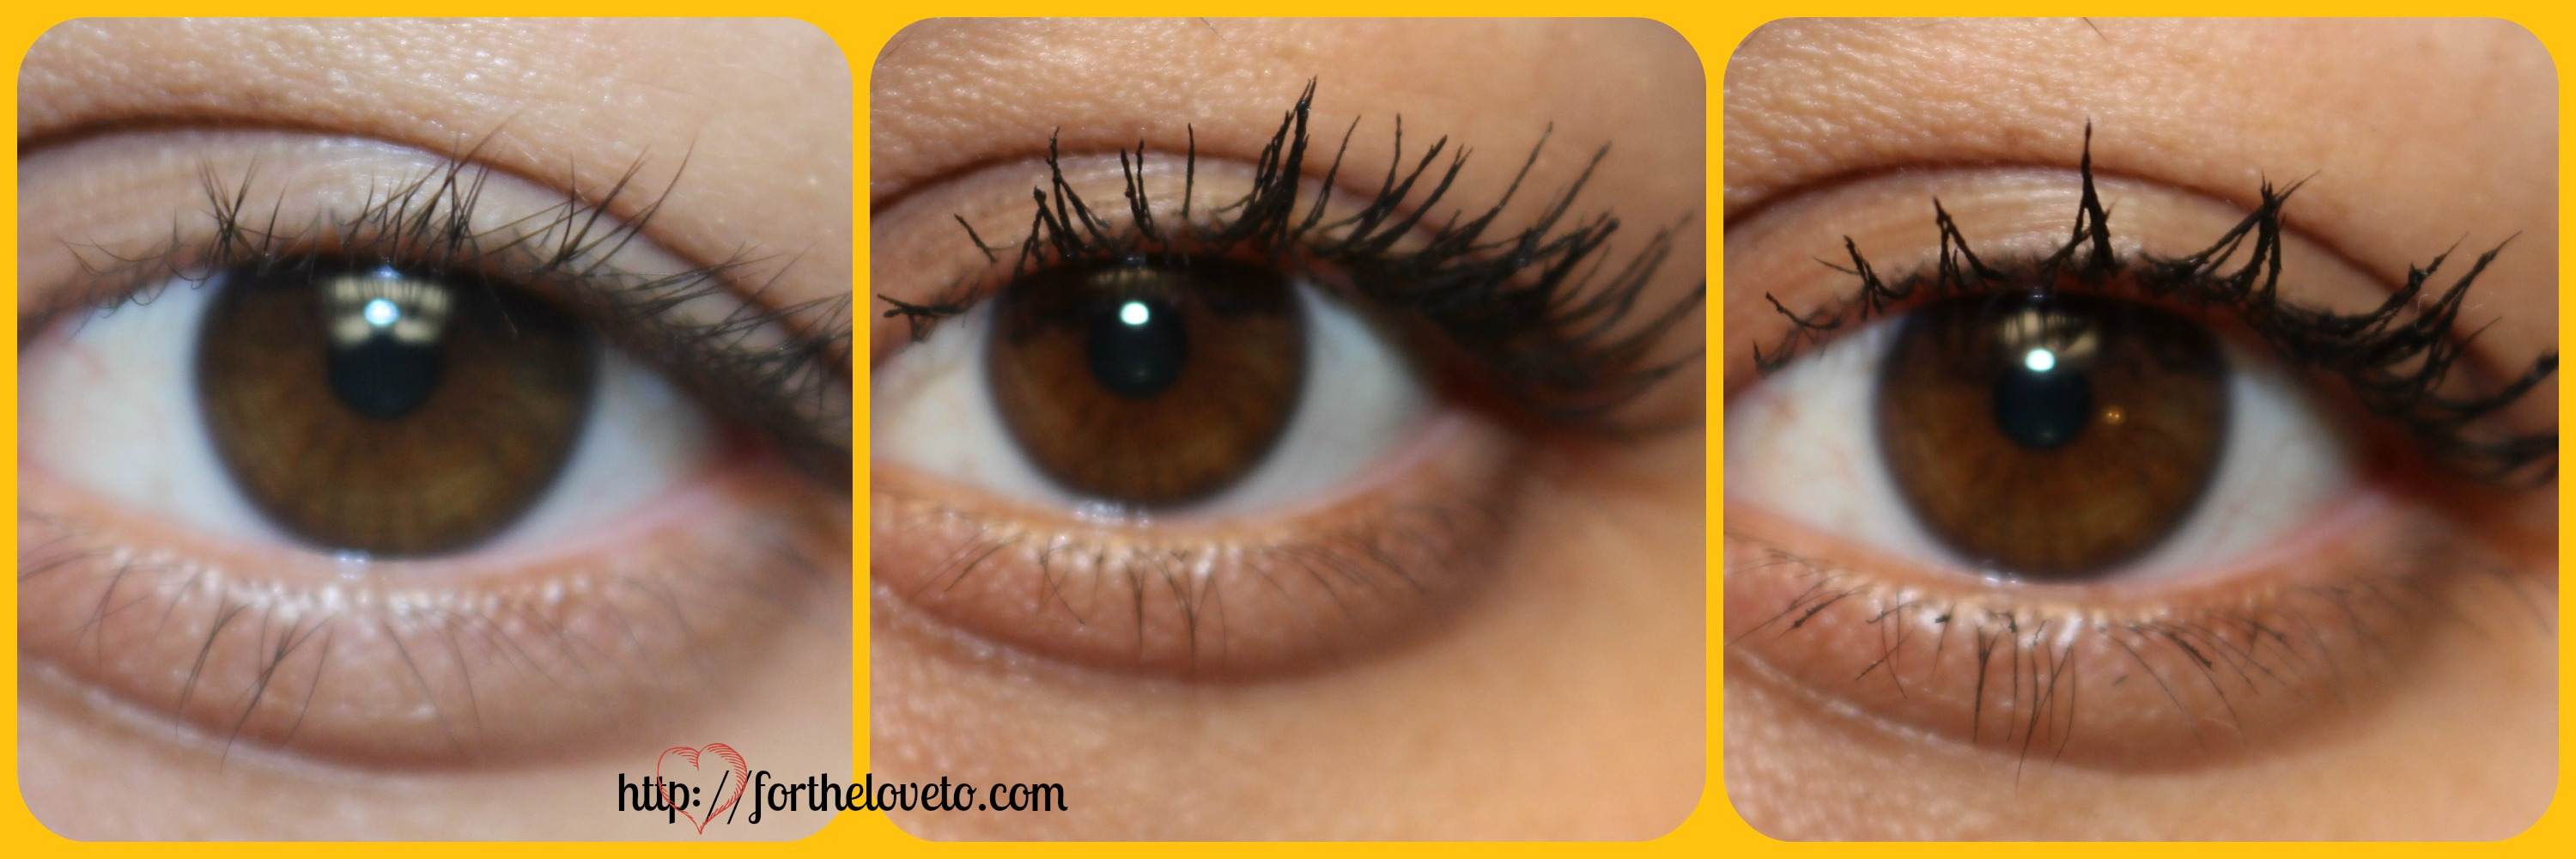 Maybelline New Review Lash Chaotic Colossal YorkPersonal For By 1TKc3lJF